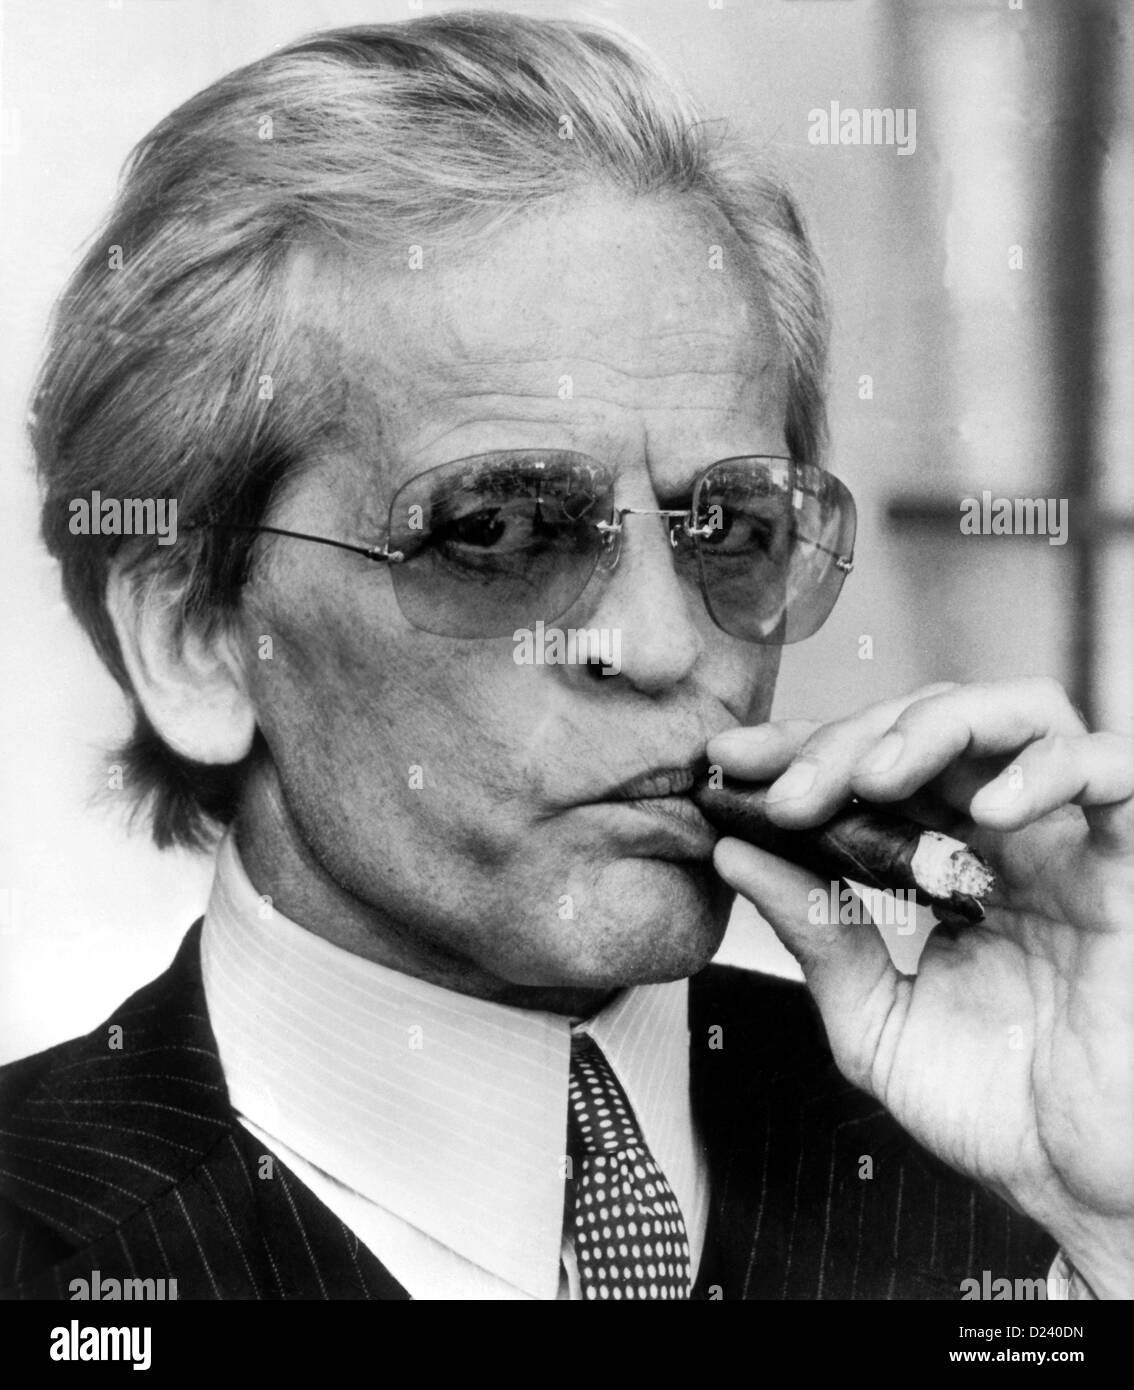 (dpa files) - German actor Klaus Kinski plays Doctor Hugo Zuckerbrot ('sugarbread') in a movie scene of Billy Wilder's comedy 'Buddy Buddy', 1981. An 'enfant terrible' of the film industry, Kinski's films include 'Aguirre, der Zorn Gottes' ('Aguirre: The Wrath of God') and 'Nosferatu: Phantom der Nacht' ('Nosferatu the Vampire'). Kinski was born on 18 October 1926 in Zoppot/Danzig, Germany (now Sopot/Gdansk, Poland) under the name of Nikolaus Guenther Nakszynski and died on 23 November 1991 in Lagunitas, California, of a heart attack. Stock Photo